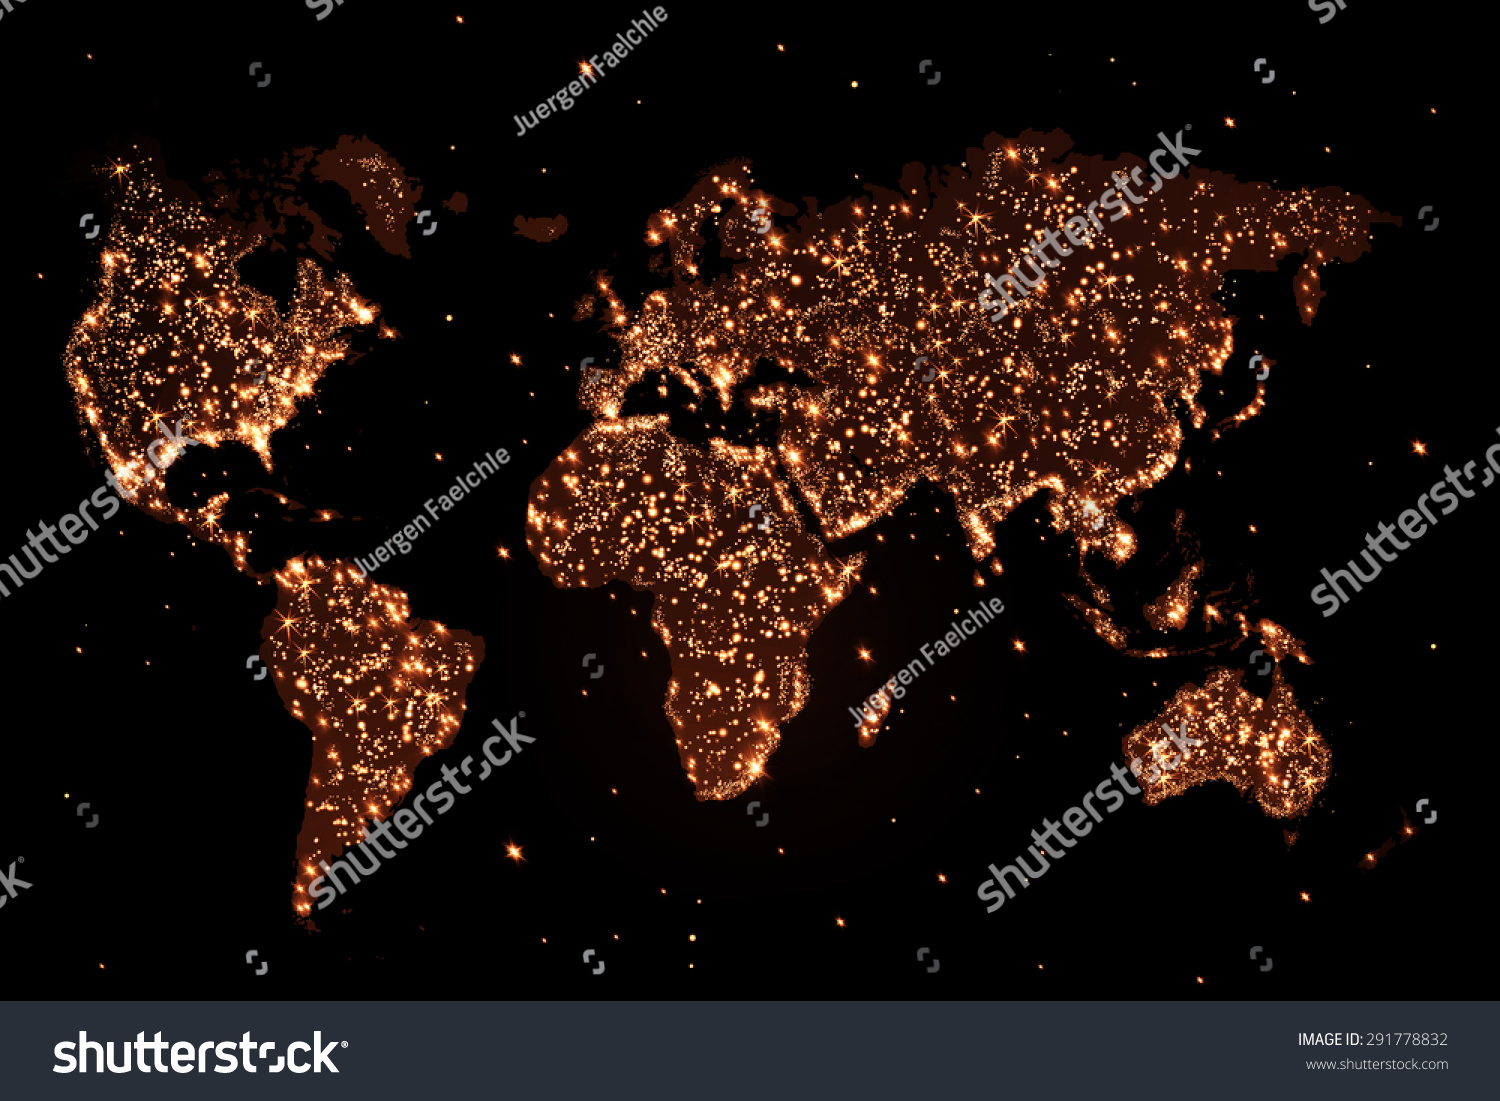 Abstract world map lights night stock illustration 291778832 abstract world map with lights in the night publicscrutiny Gallery